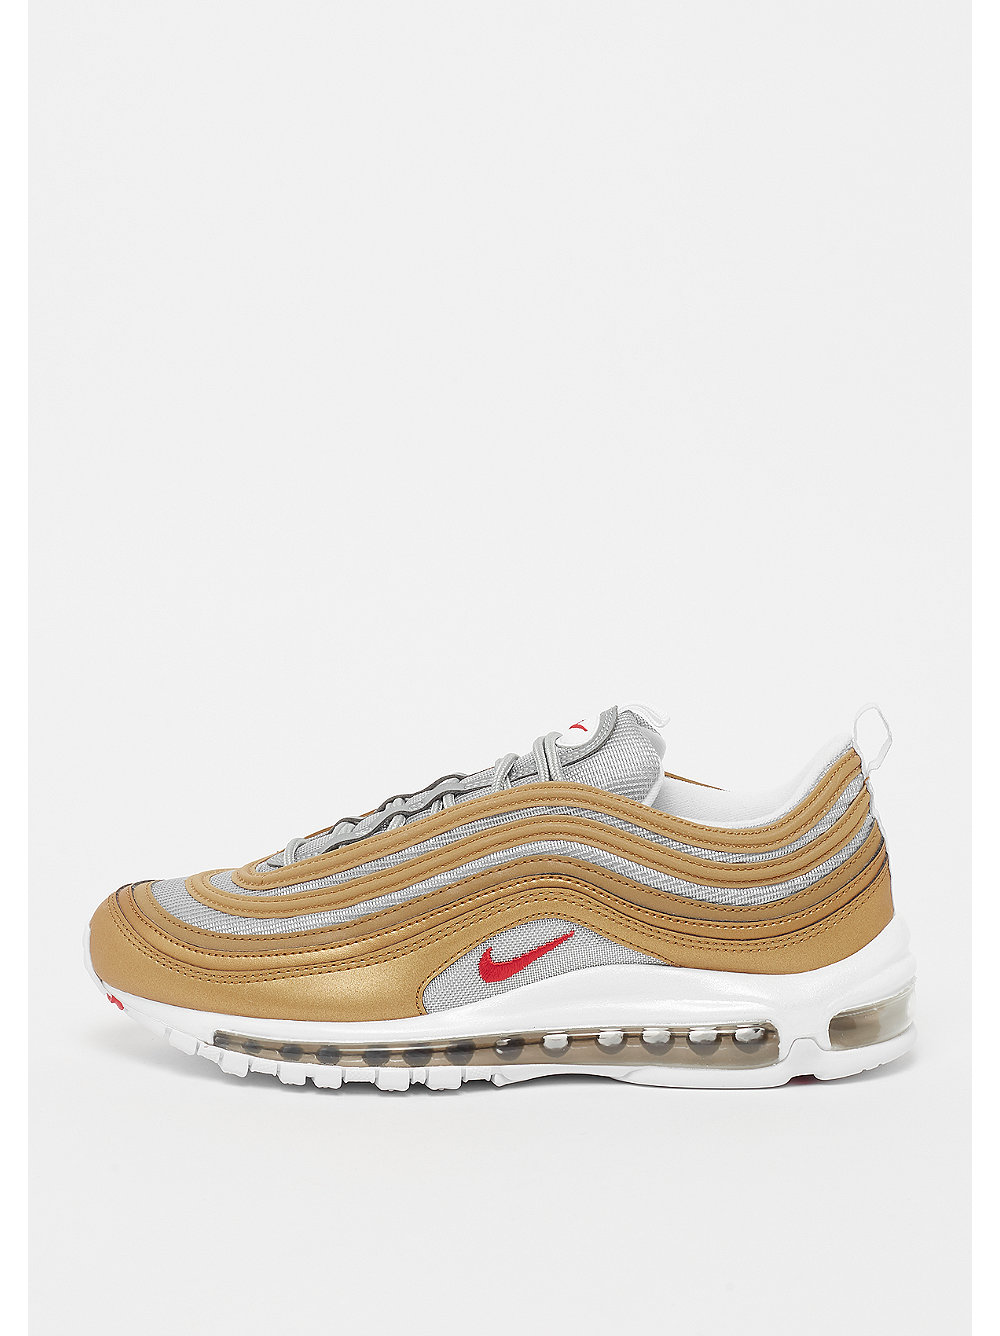 good nike air max 97 gold orangen 80a48 bf6d0